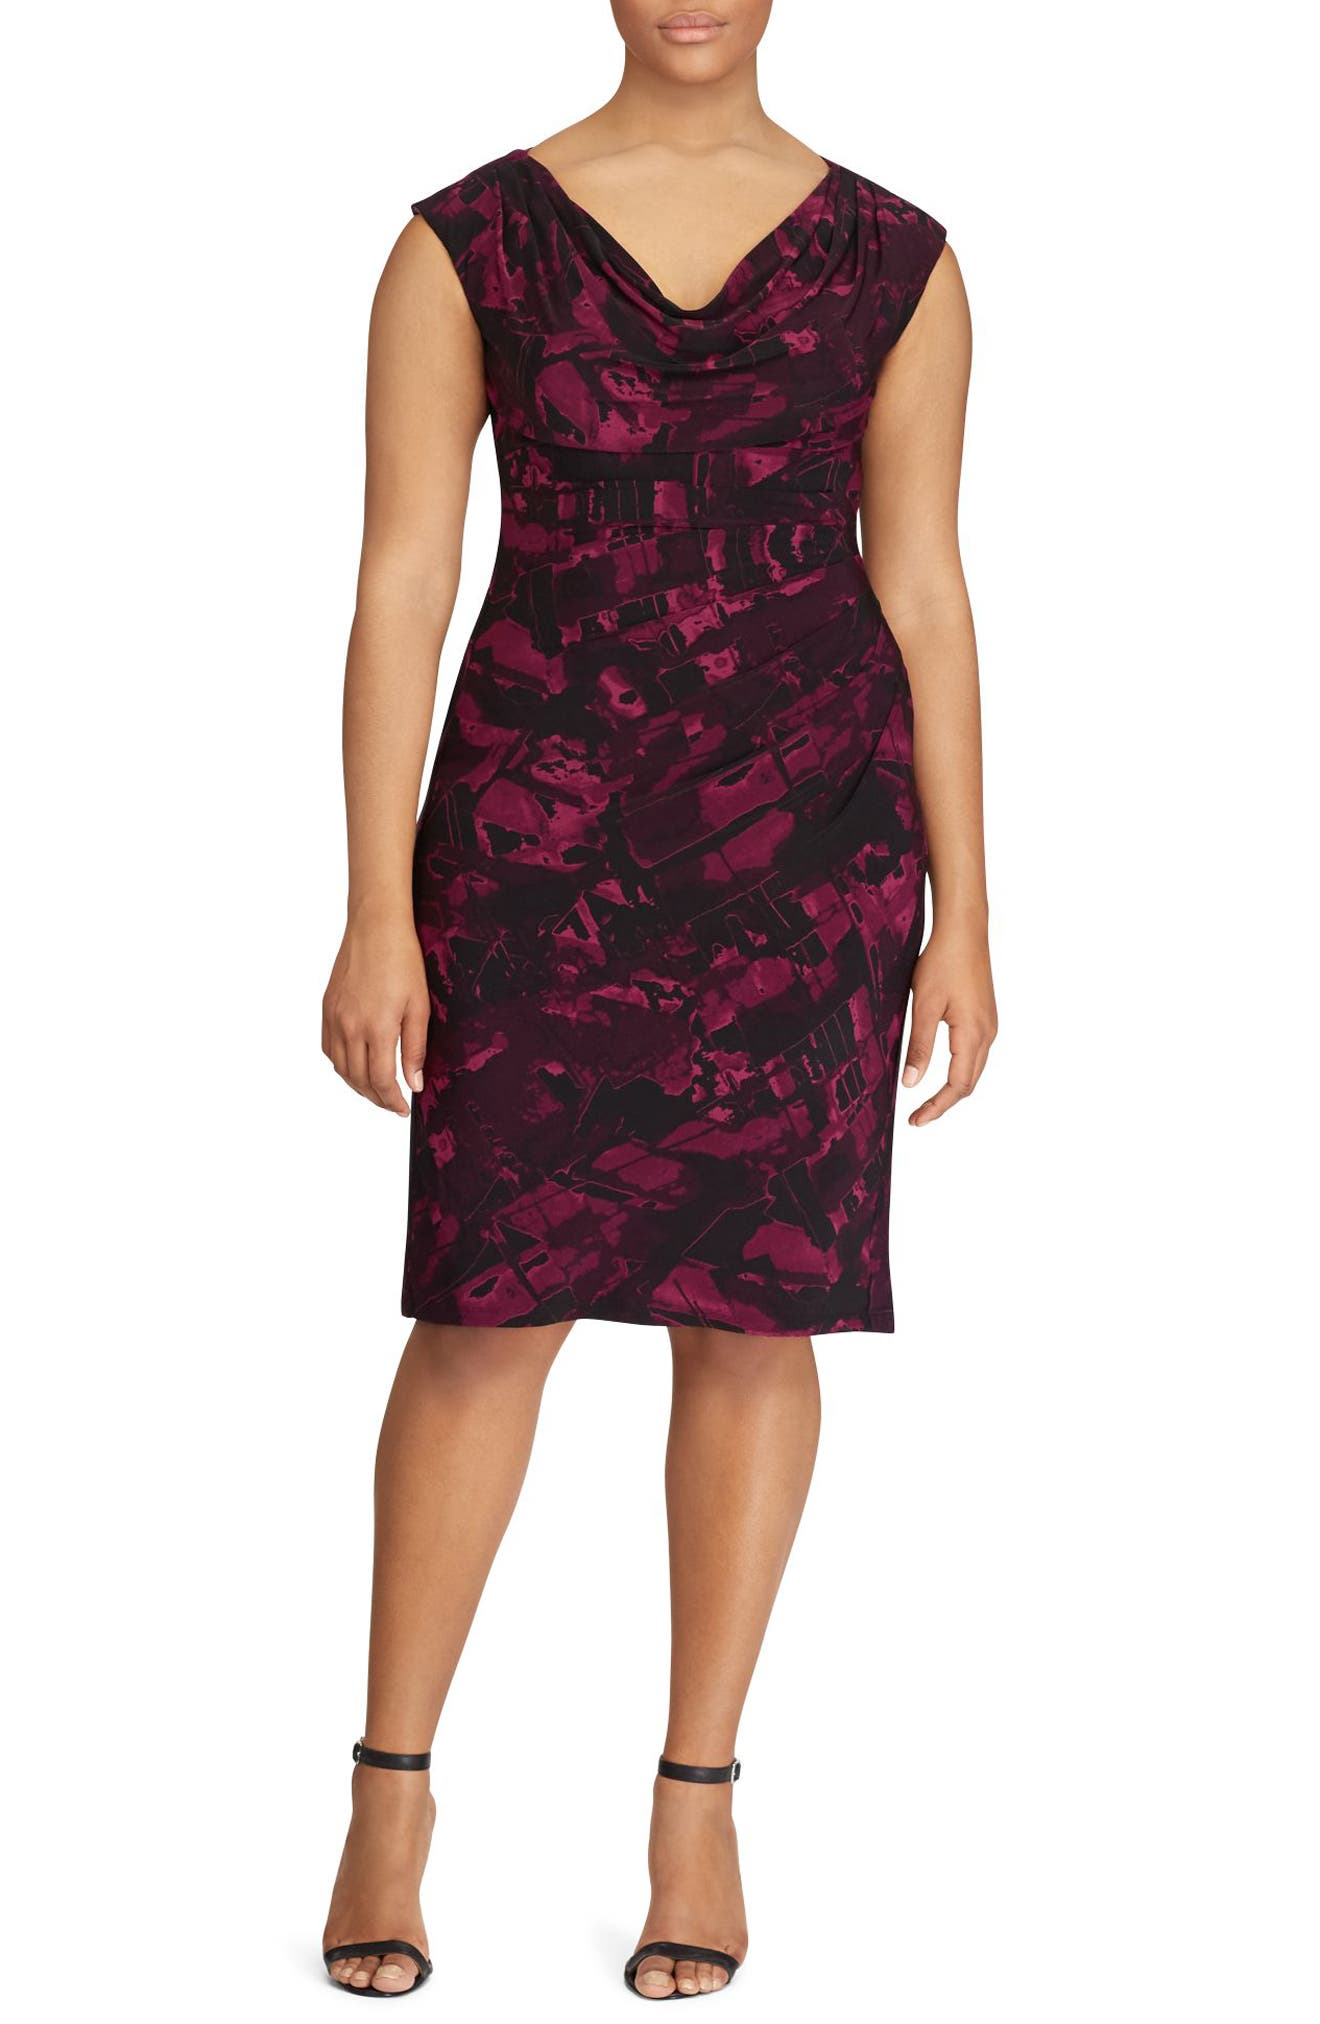 Laruen Ralph Lauren Abstract Print Sheath Dress (Plus Size)